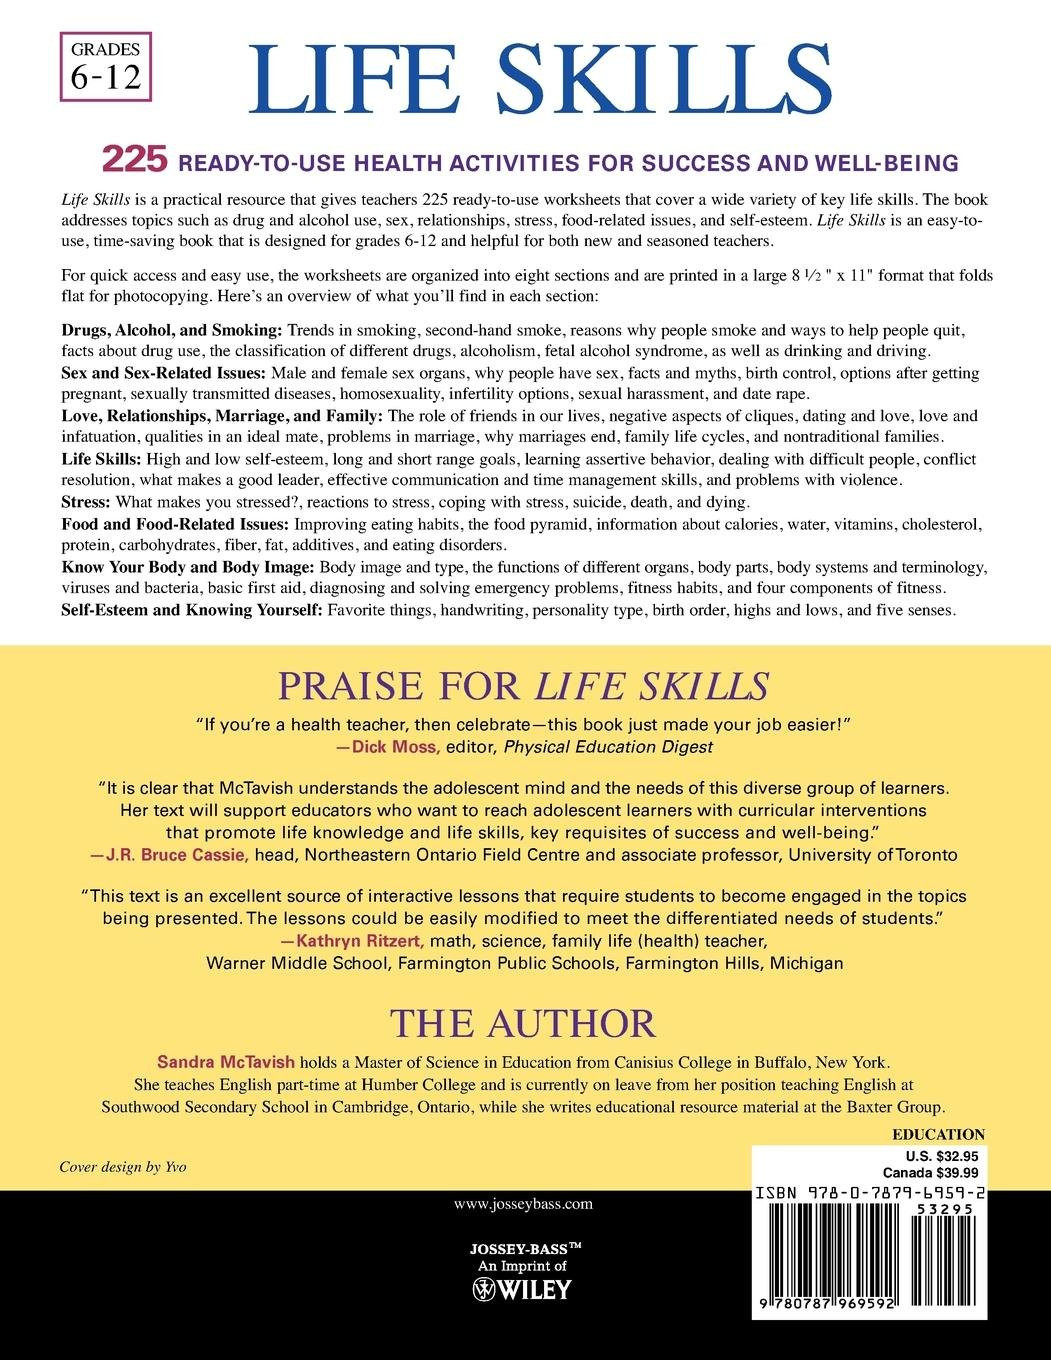 Middle School Life Skills Worksheets Buy Life Skills 225 Ready–to–use Health Activities for